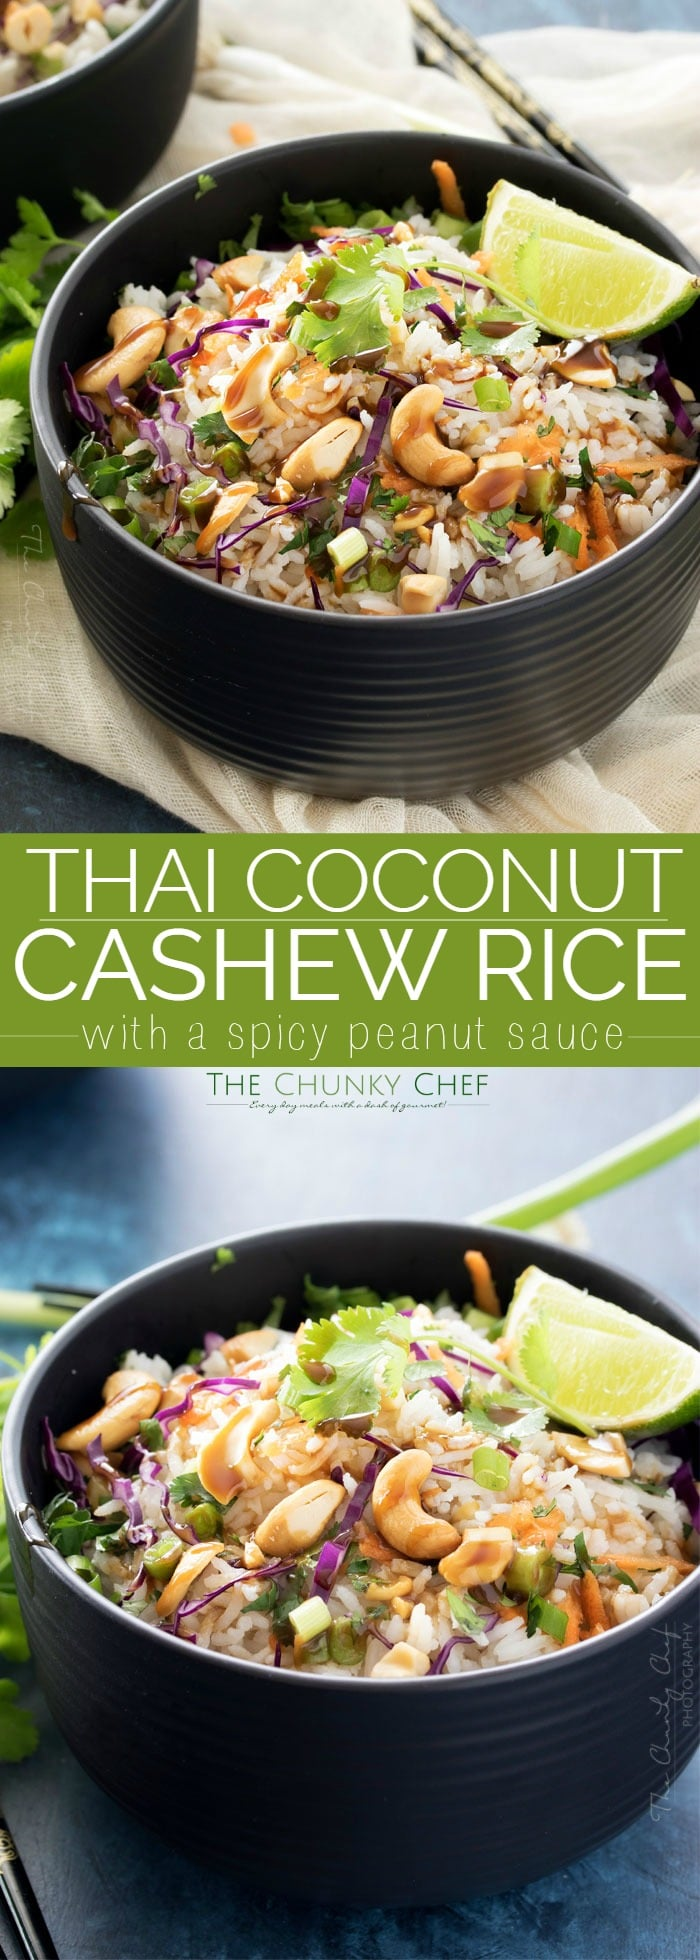 Thai Coconut Cashew Rice - The Chunky Chef